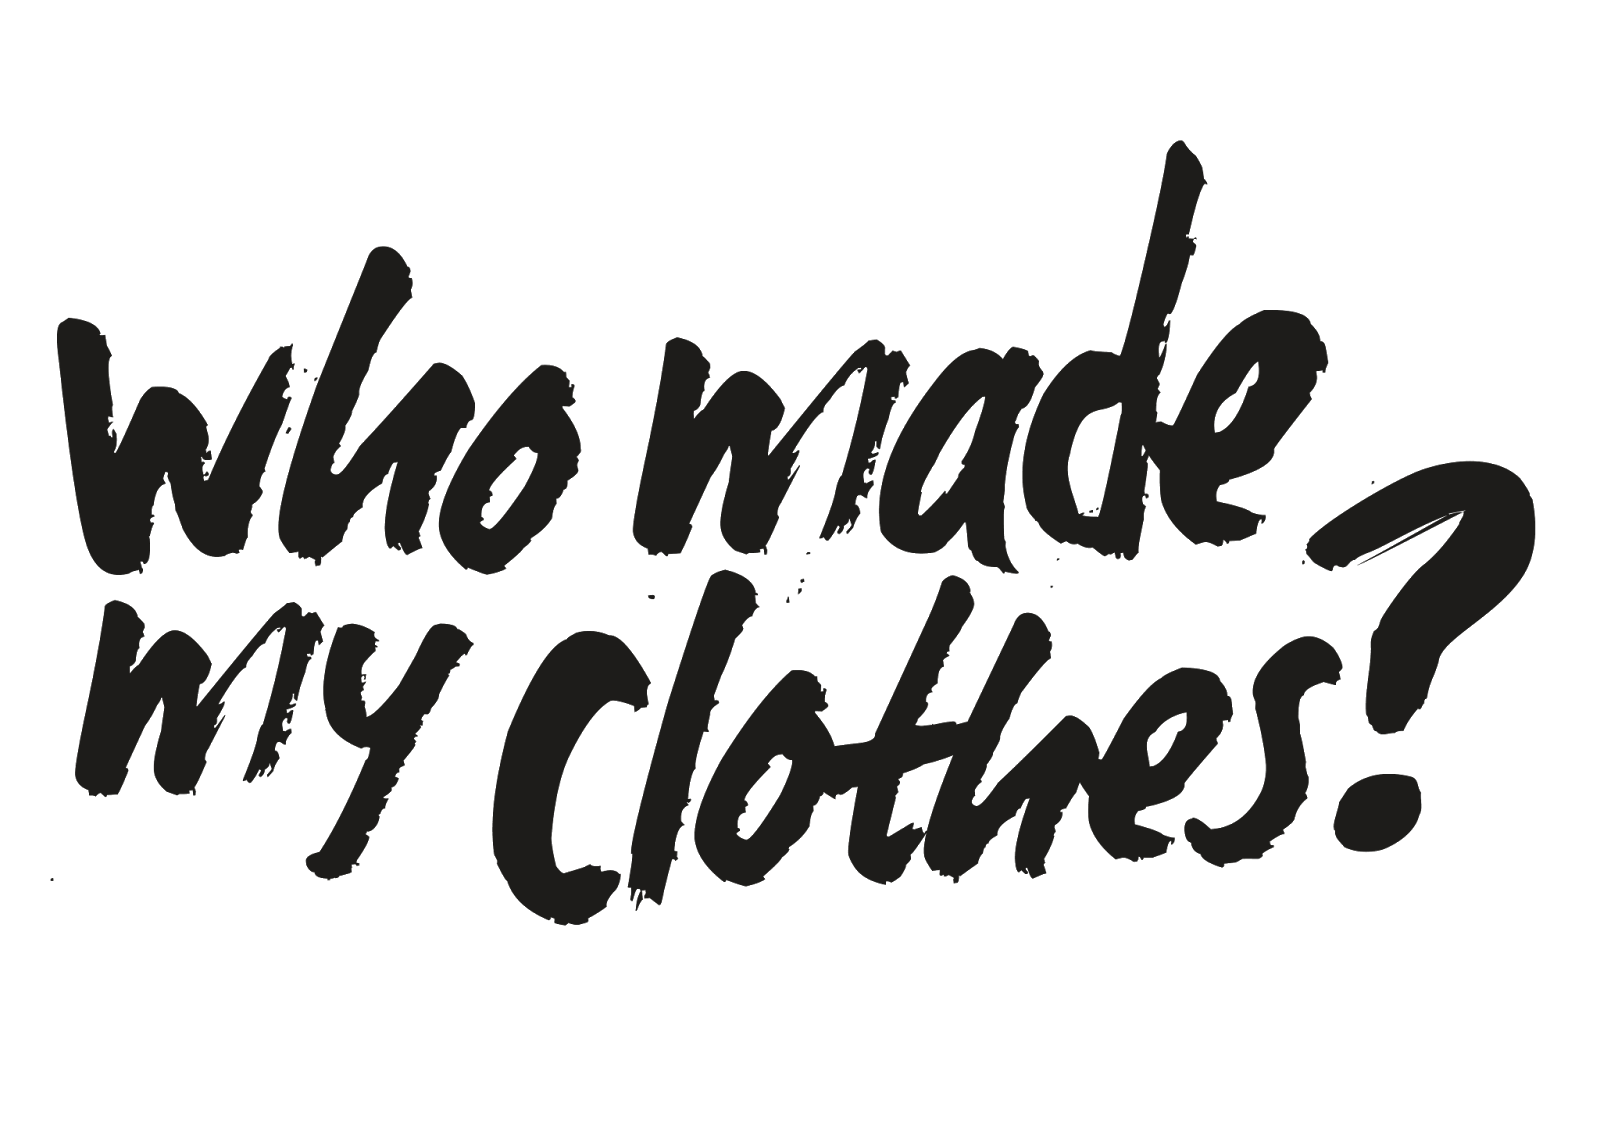 Words transparent fashion. Who made my clothes